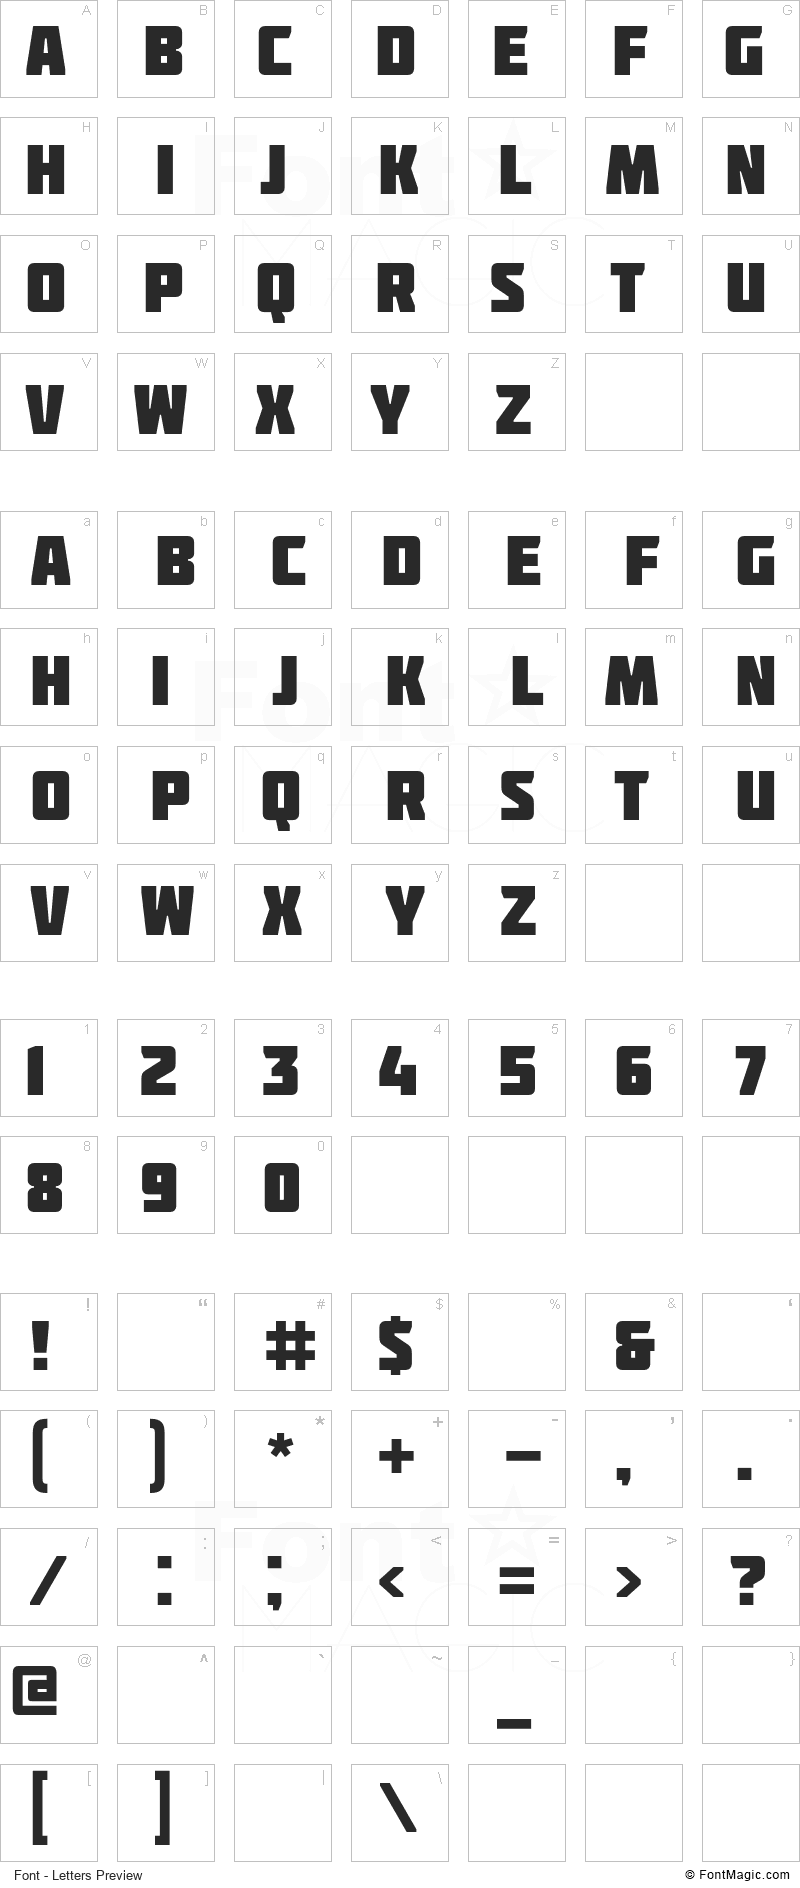 Molot Font - All Latters Preview Chart